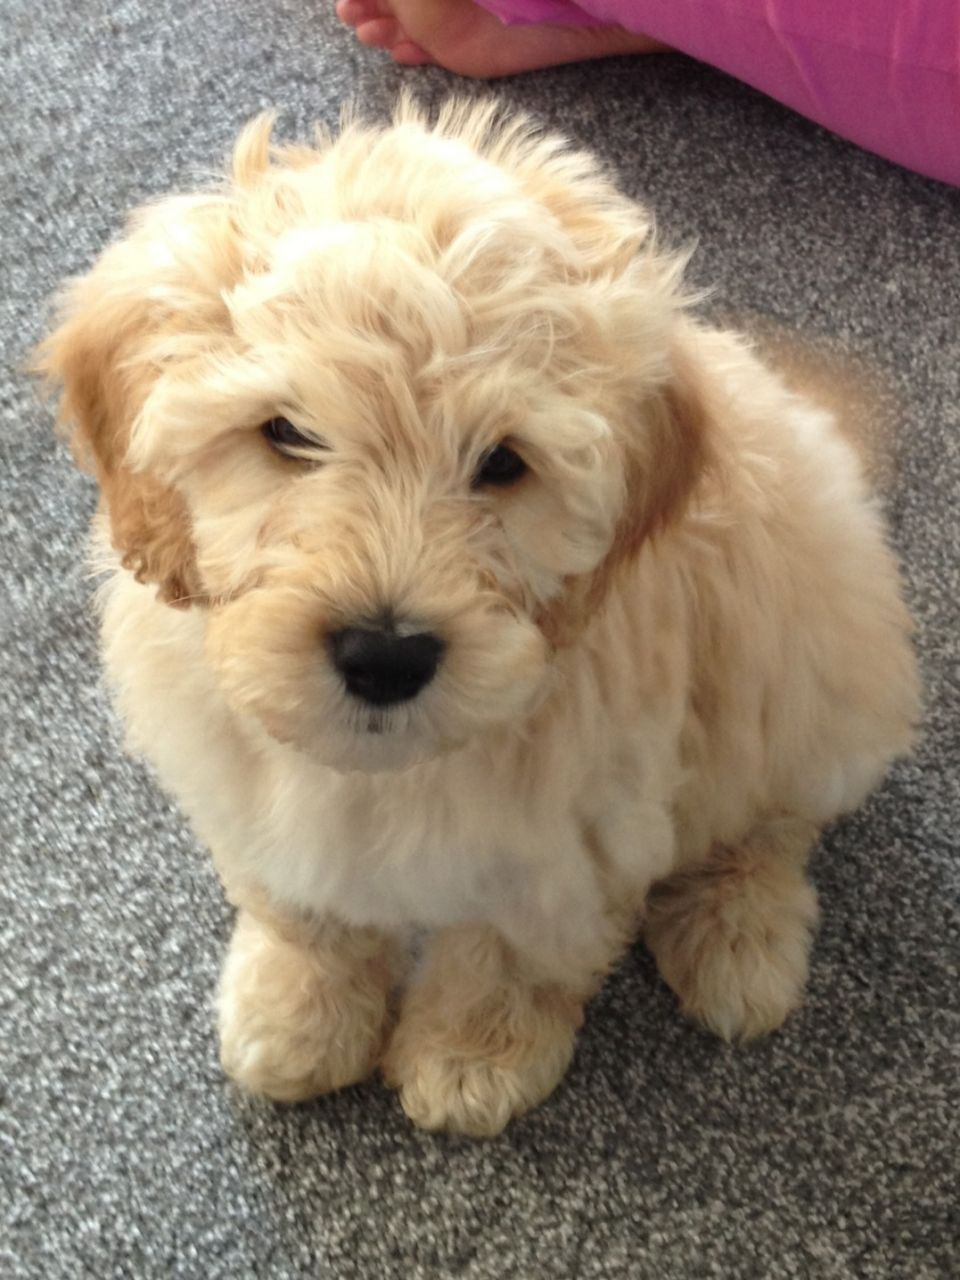 12 Reasons Why You Should Never Own Labradoodles Labradoodle